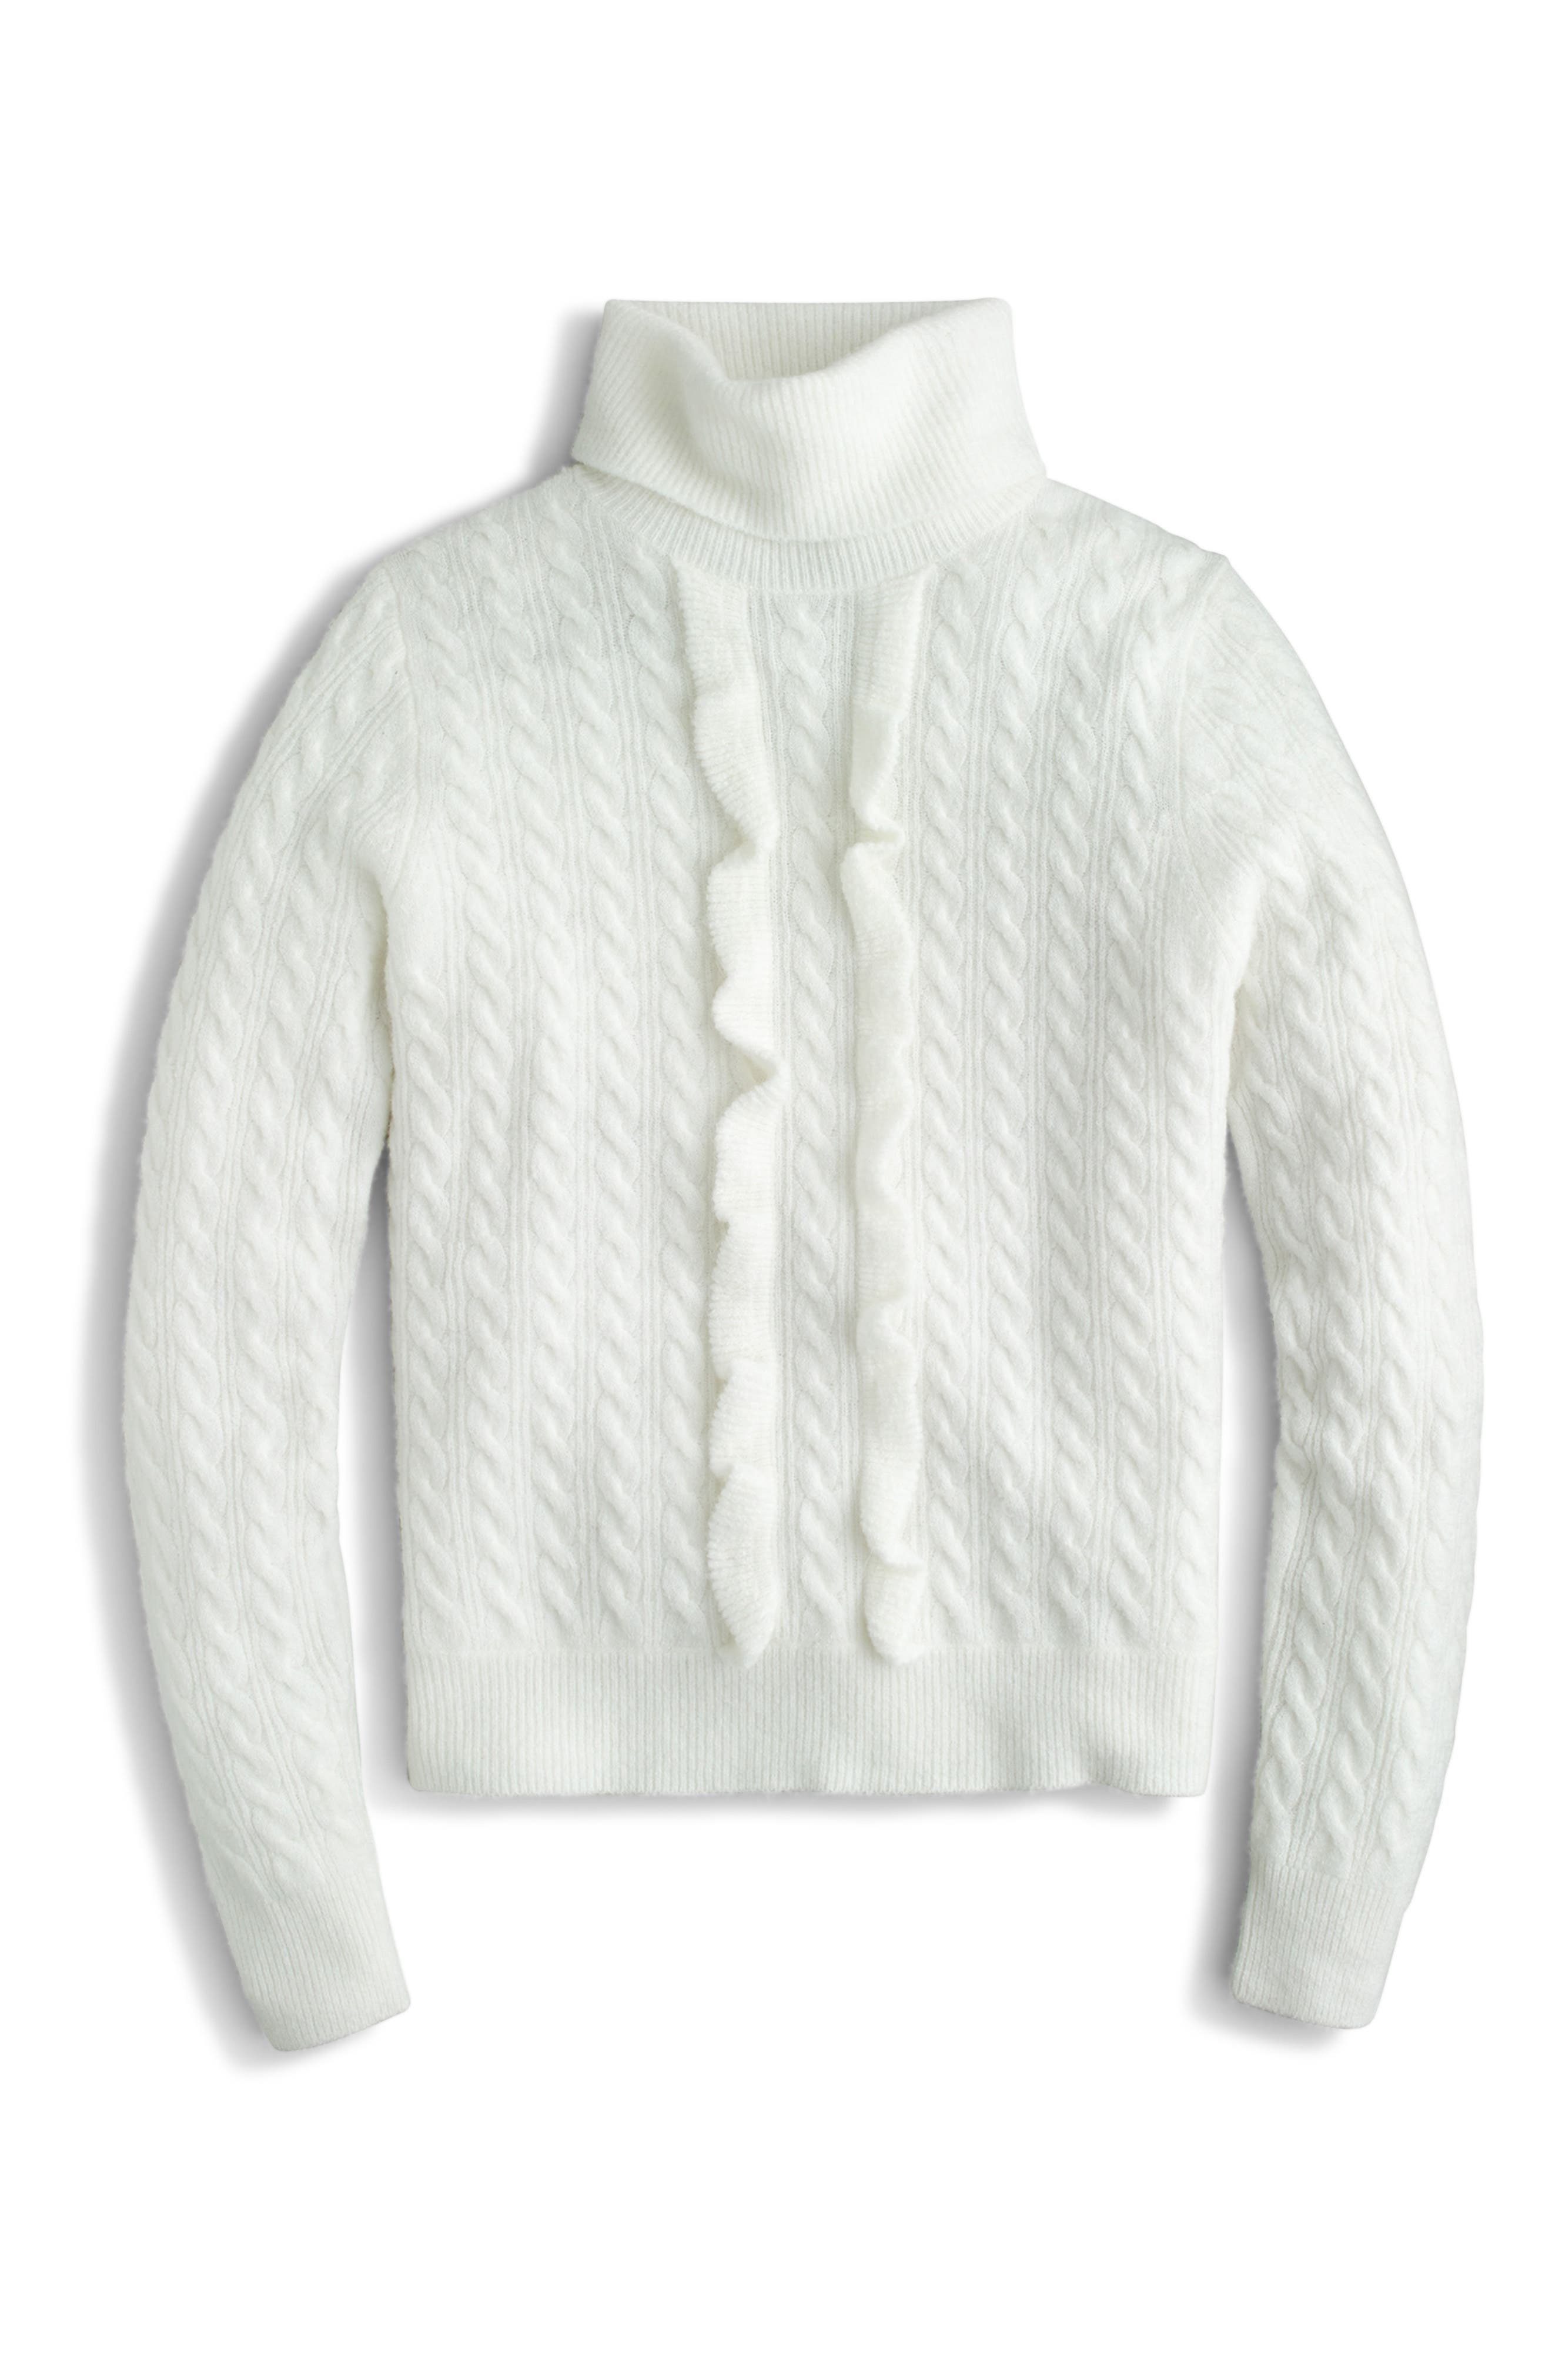 J.Crew Supersoft Ruffle Front Turtleneck (Regular & Plus Size)